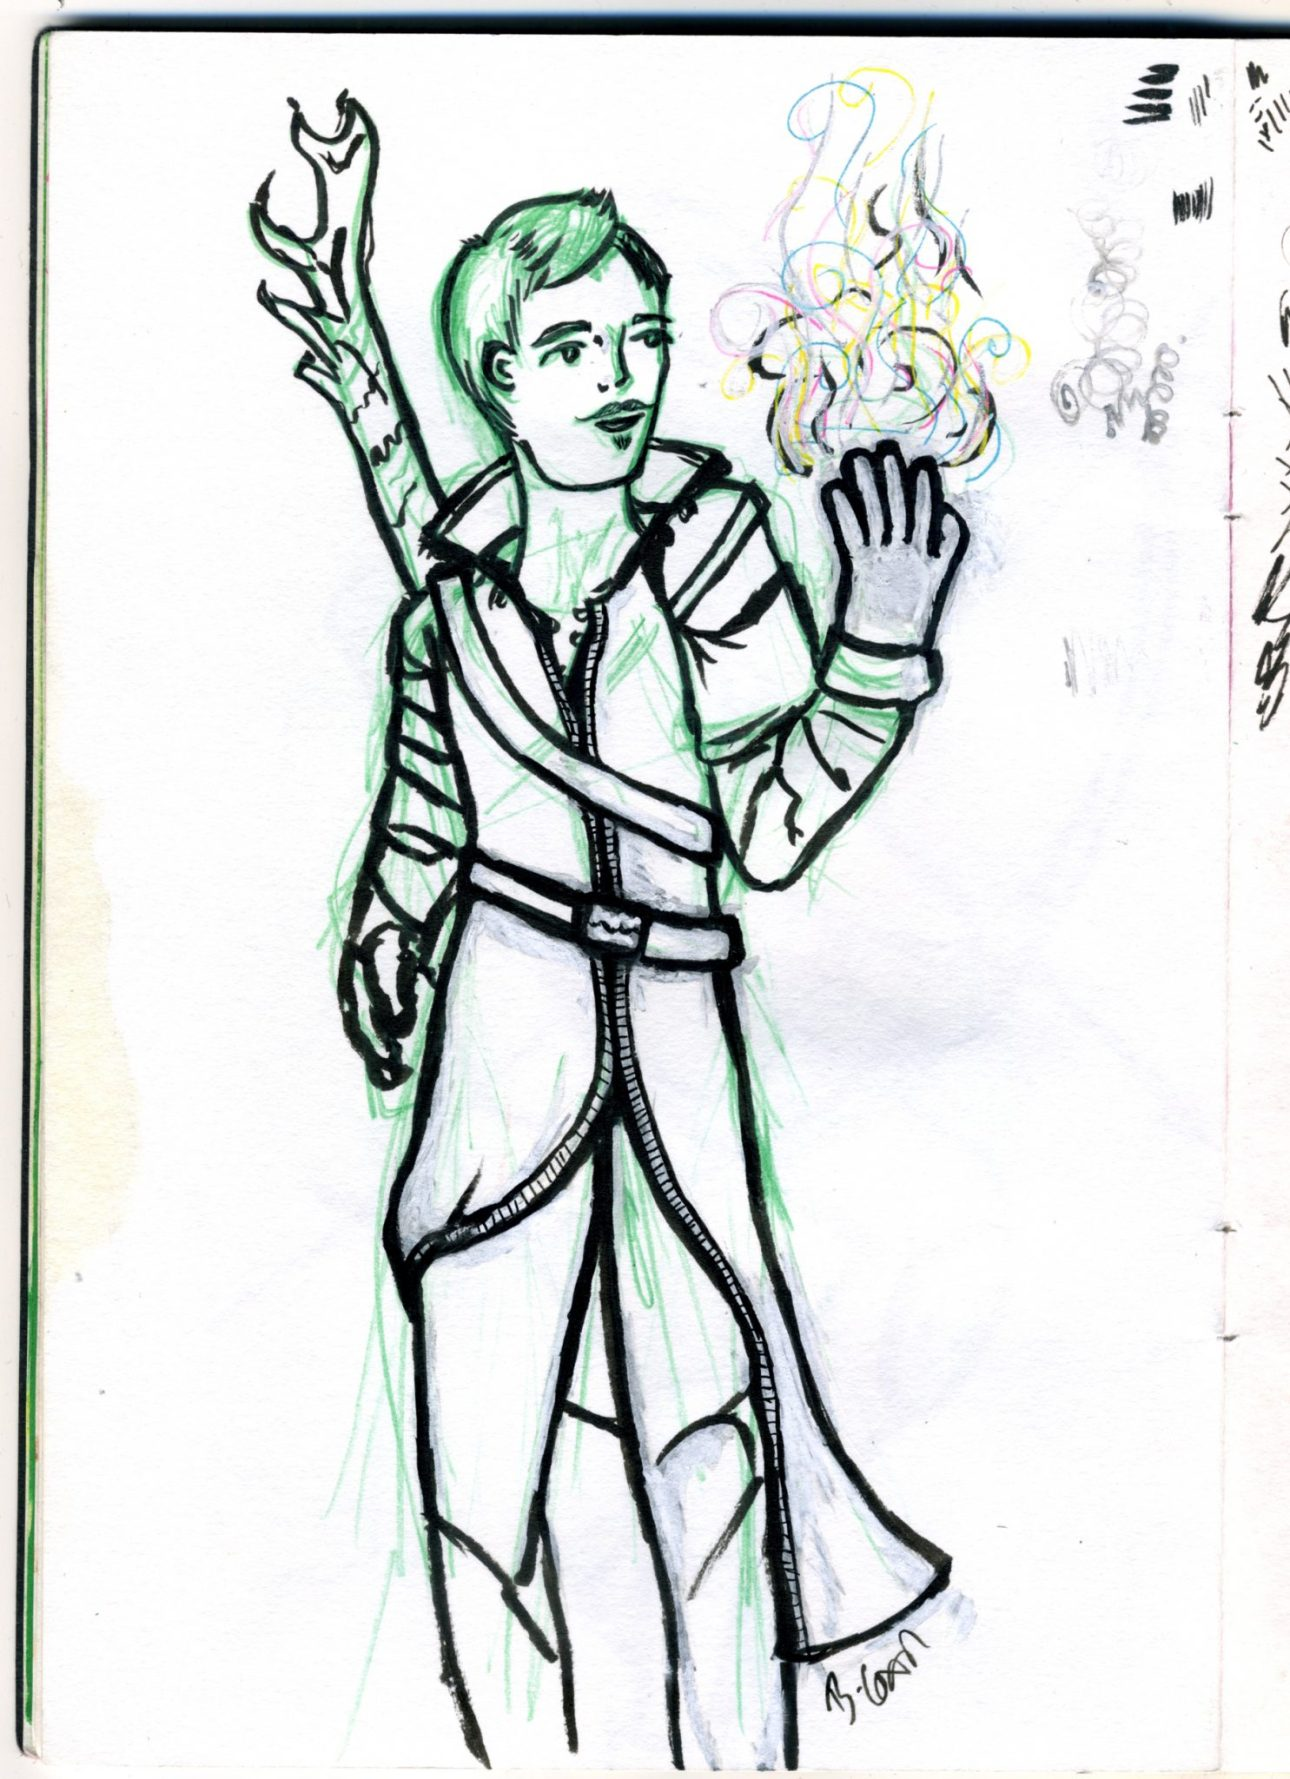 A brush pen sketch of Dorian Pavus from Dragon Age: Inquisition.